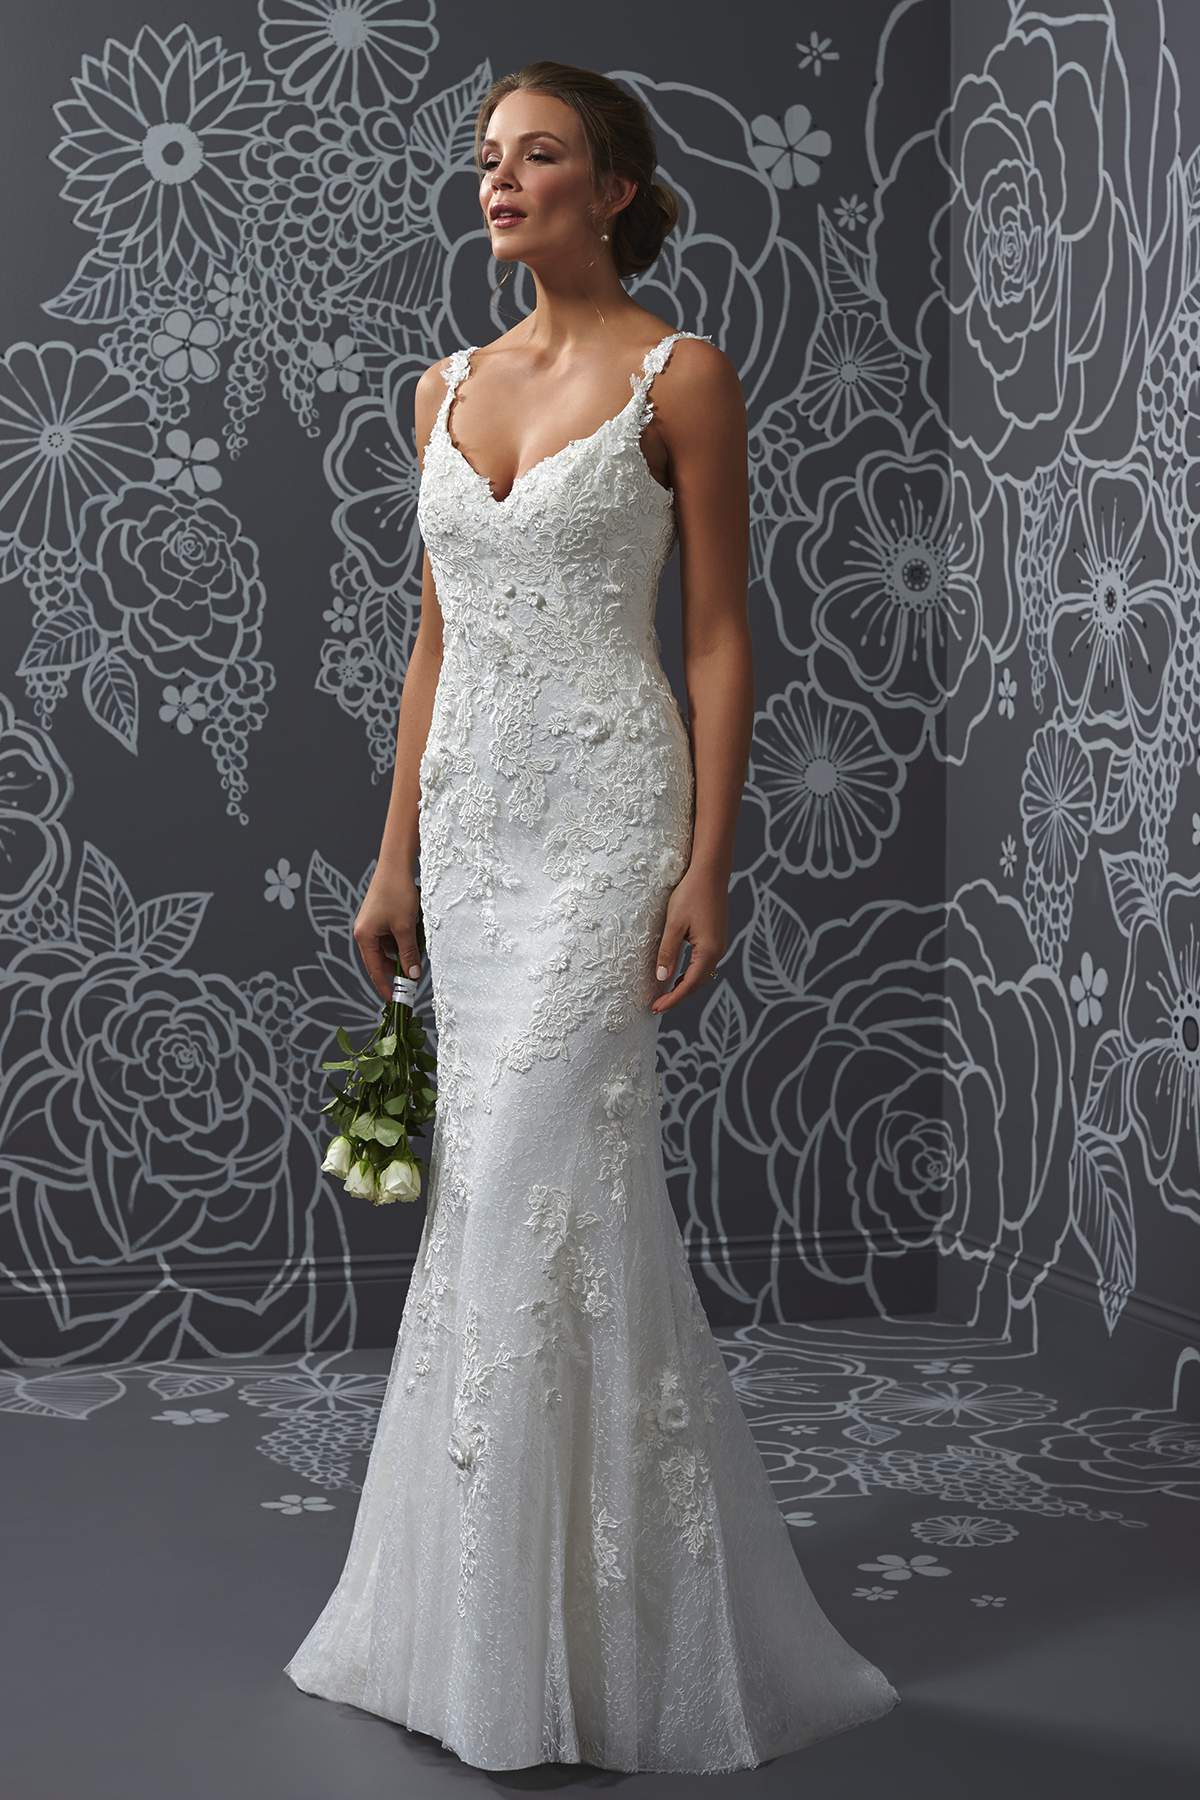 Annabelle by Romantica of Devon - Find Your Dream Dress